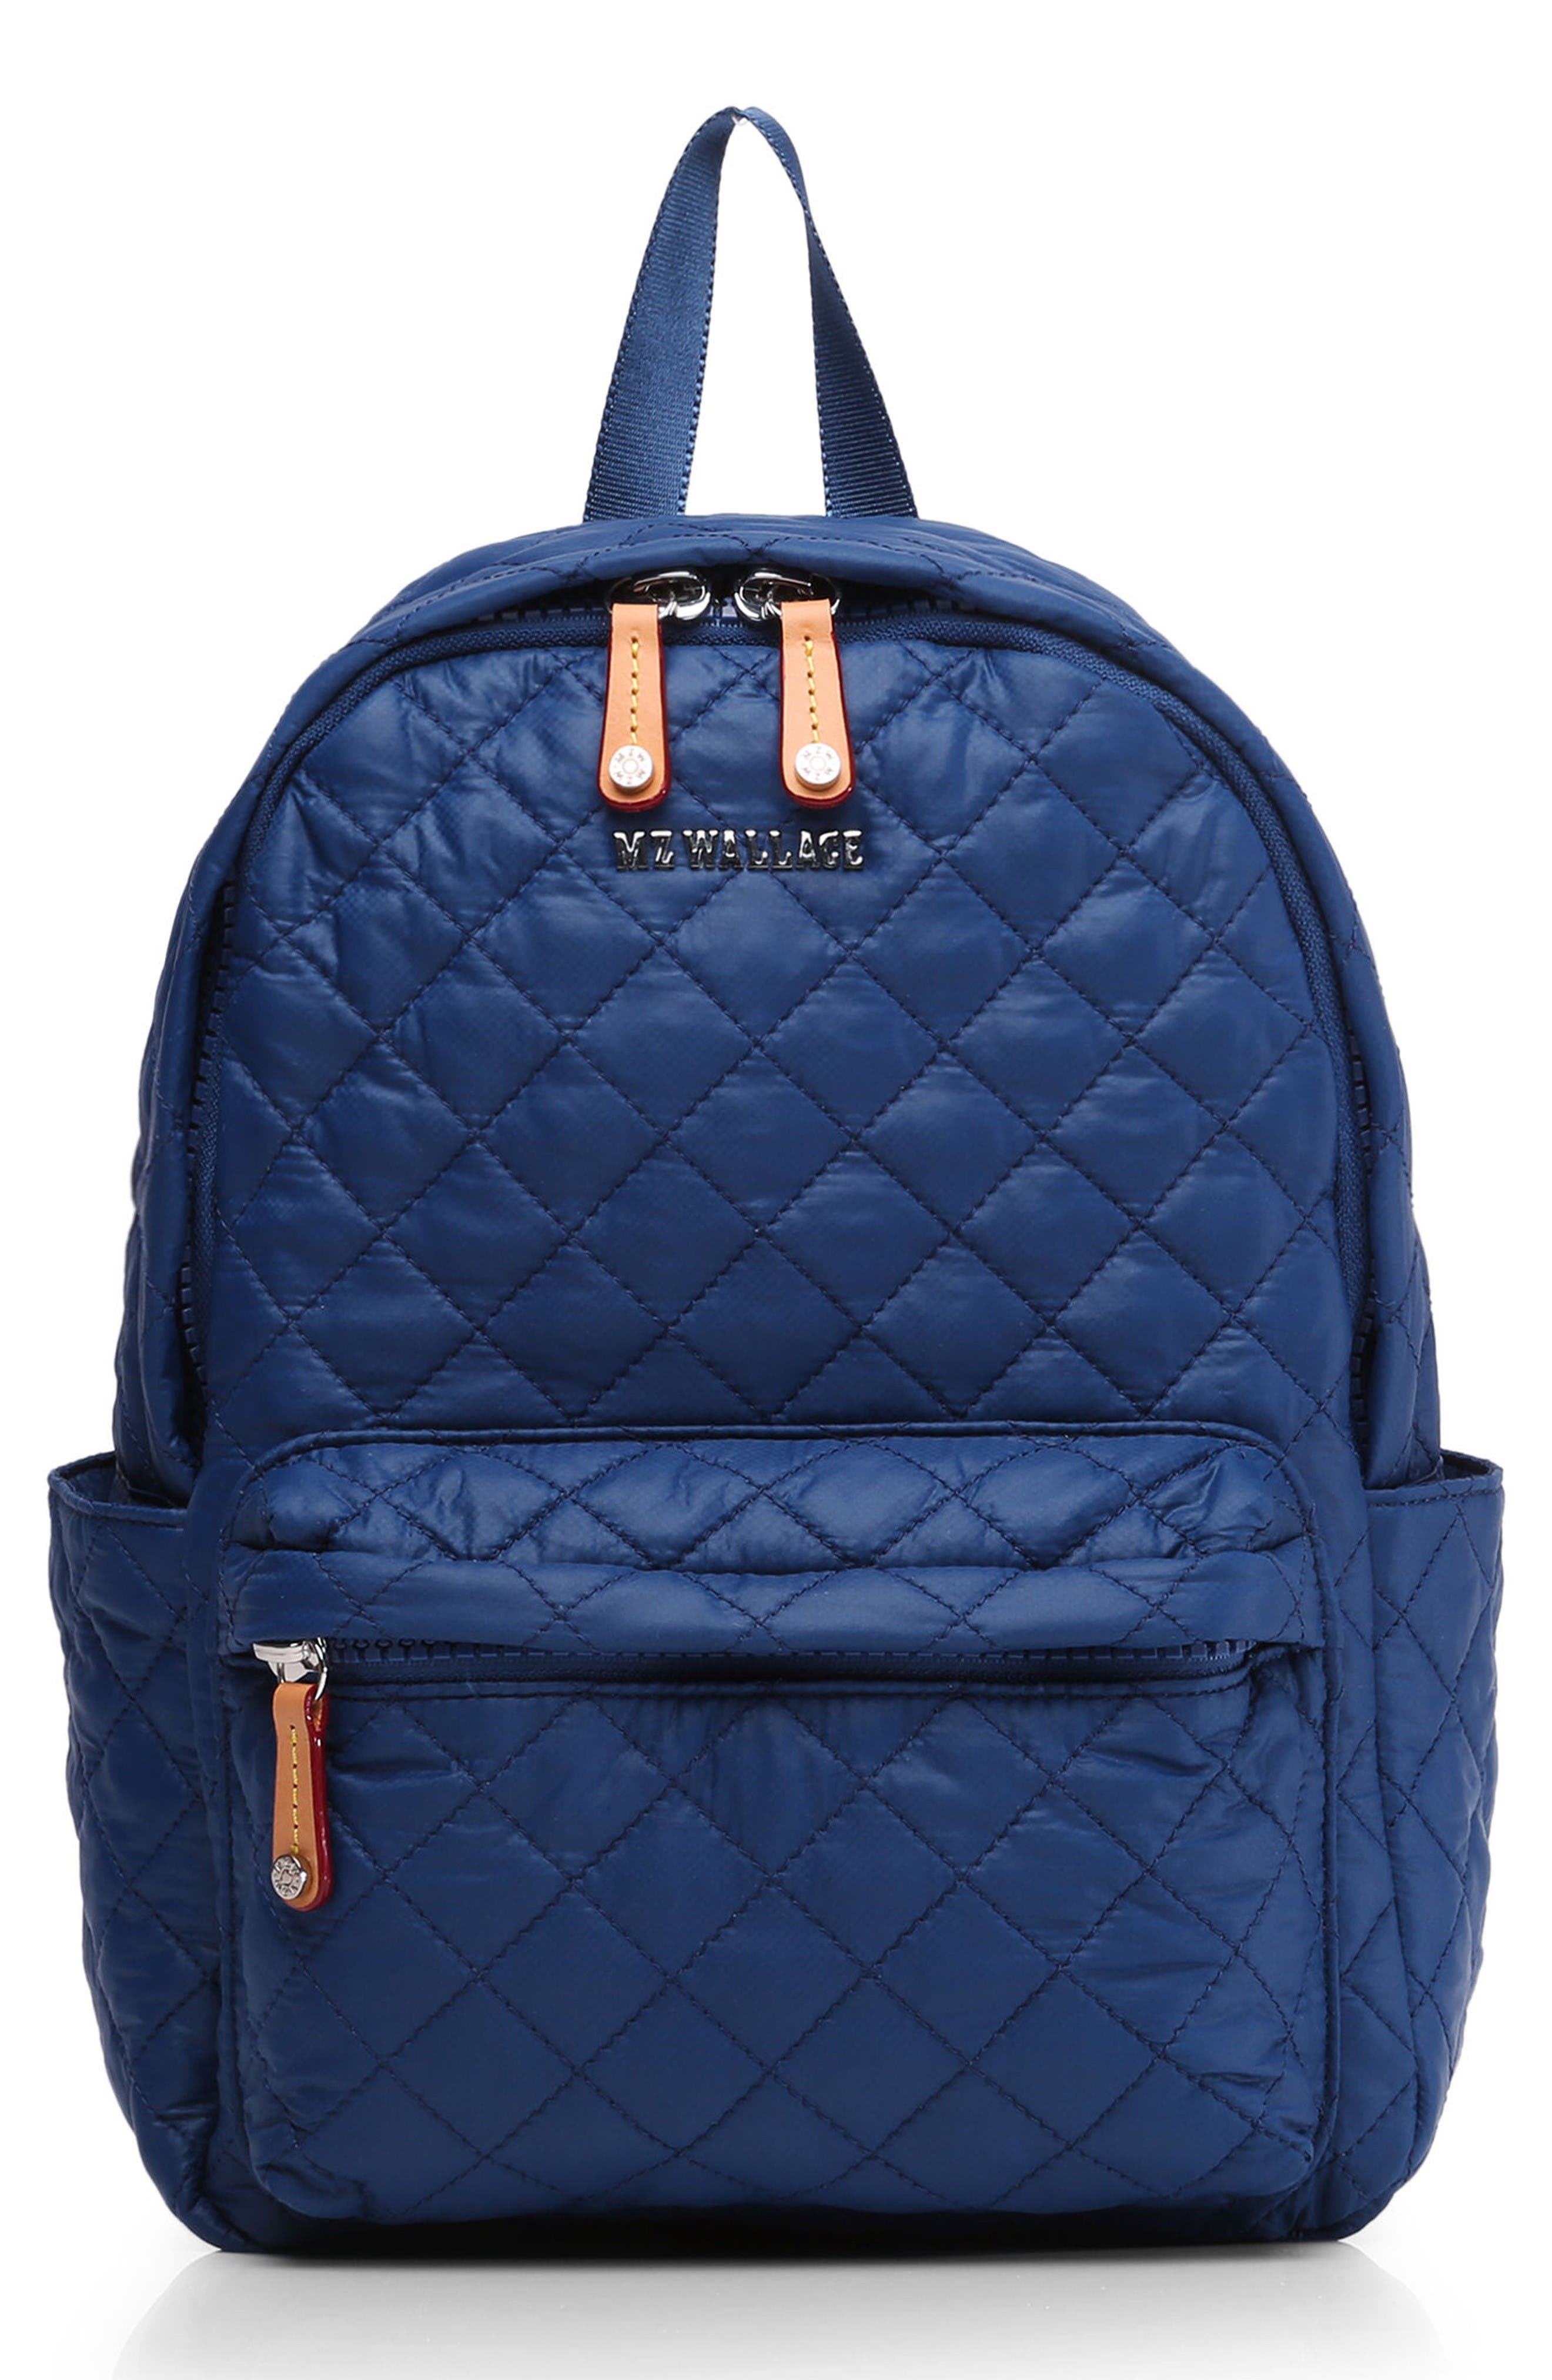 Main Image - MZ Wallace 'Small Metro' Quilted Oxford Nylon Backpack